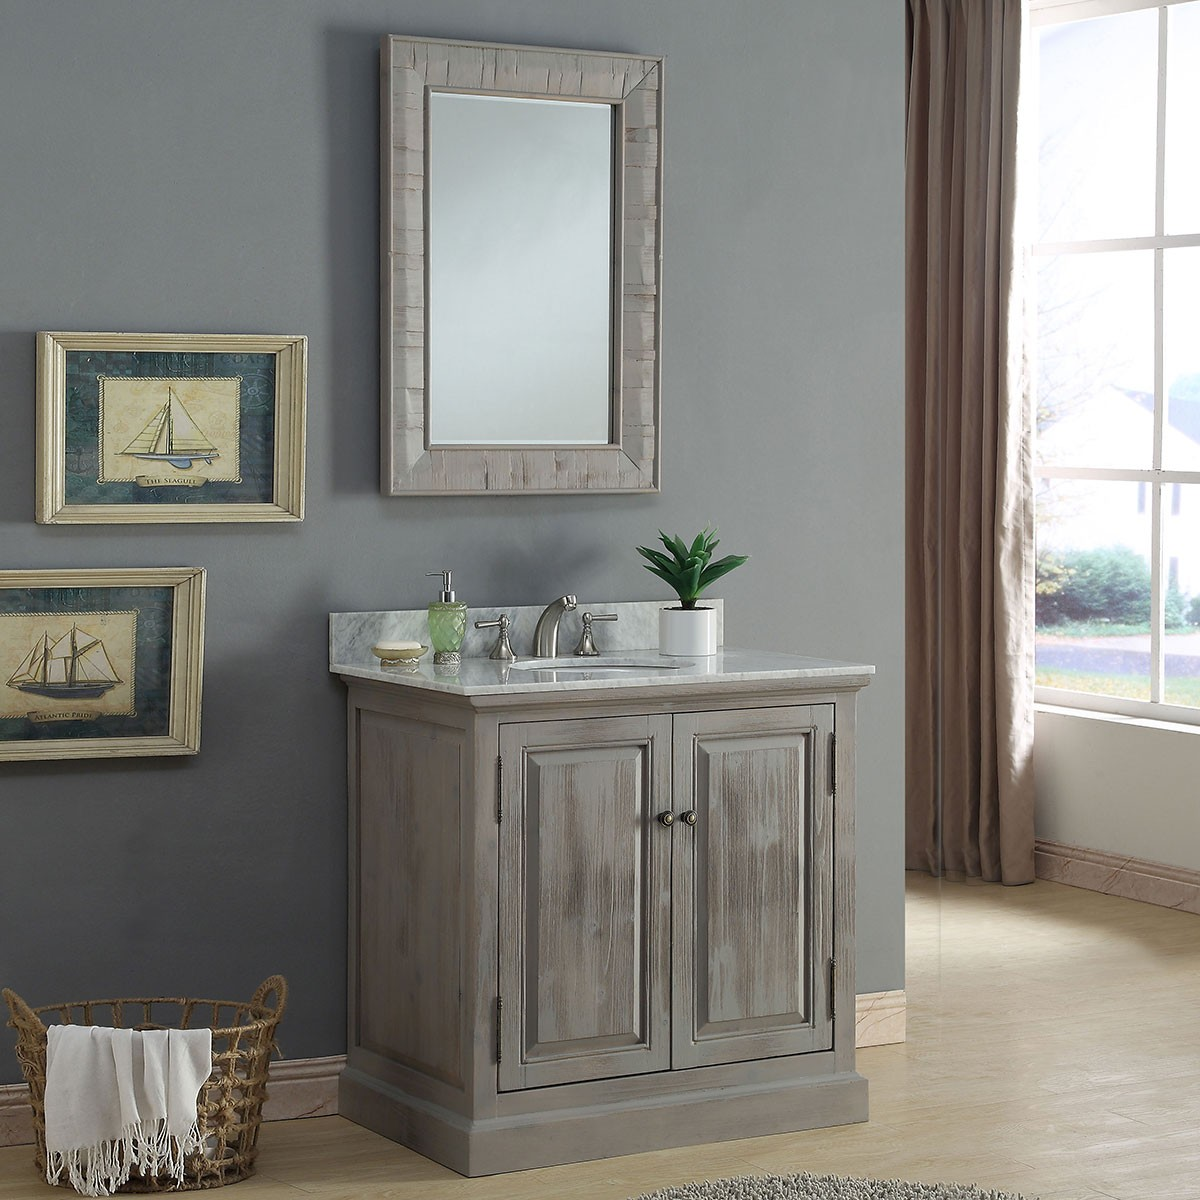 Awesome Stand Alone Bathroom Storage Cabinets